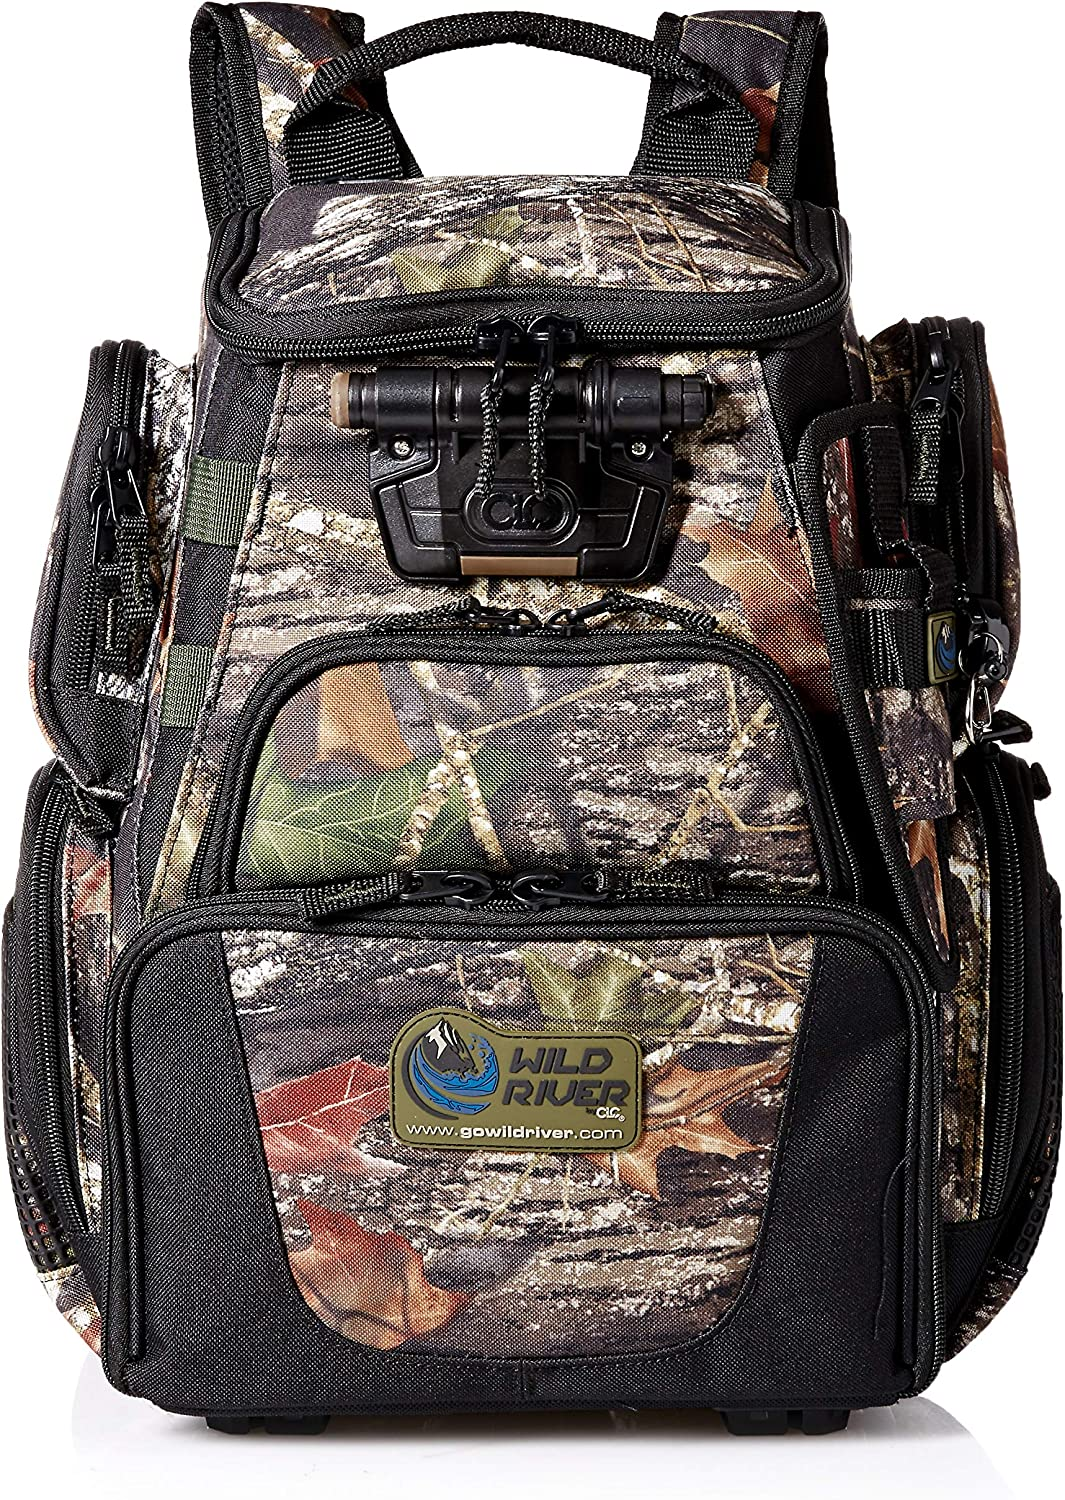 Wild River by CLC 503 Tackle Tek Recon LED Lighted Camo Compact Backpack, Mossy Oak